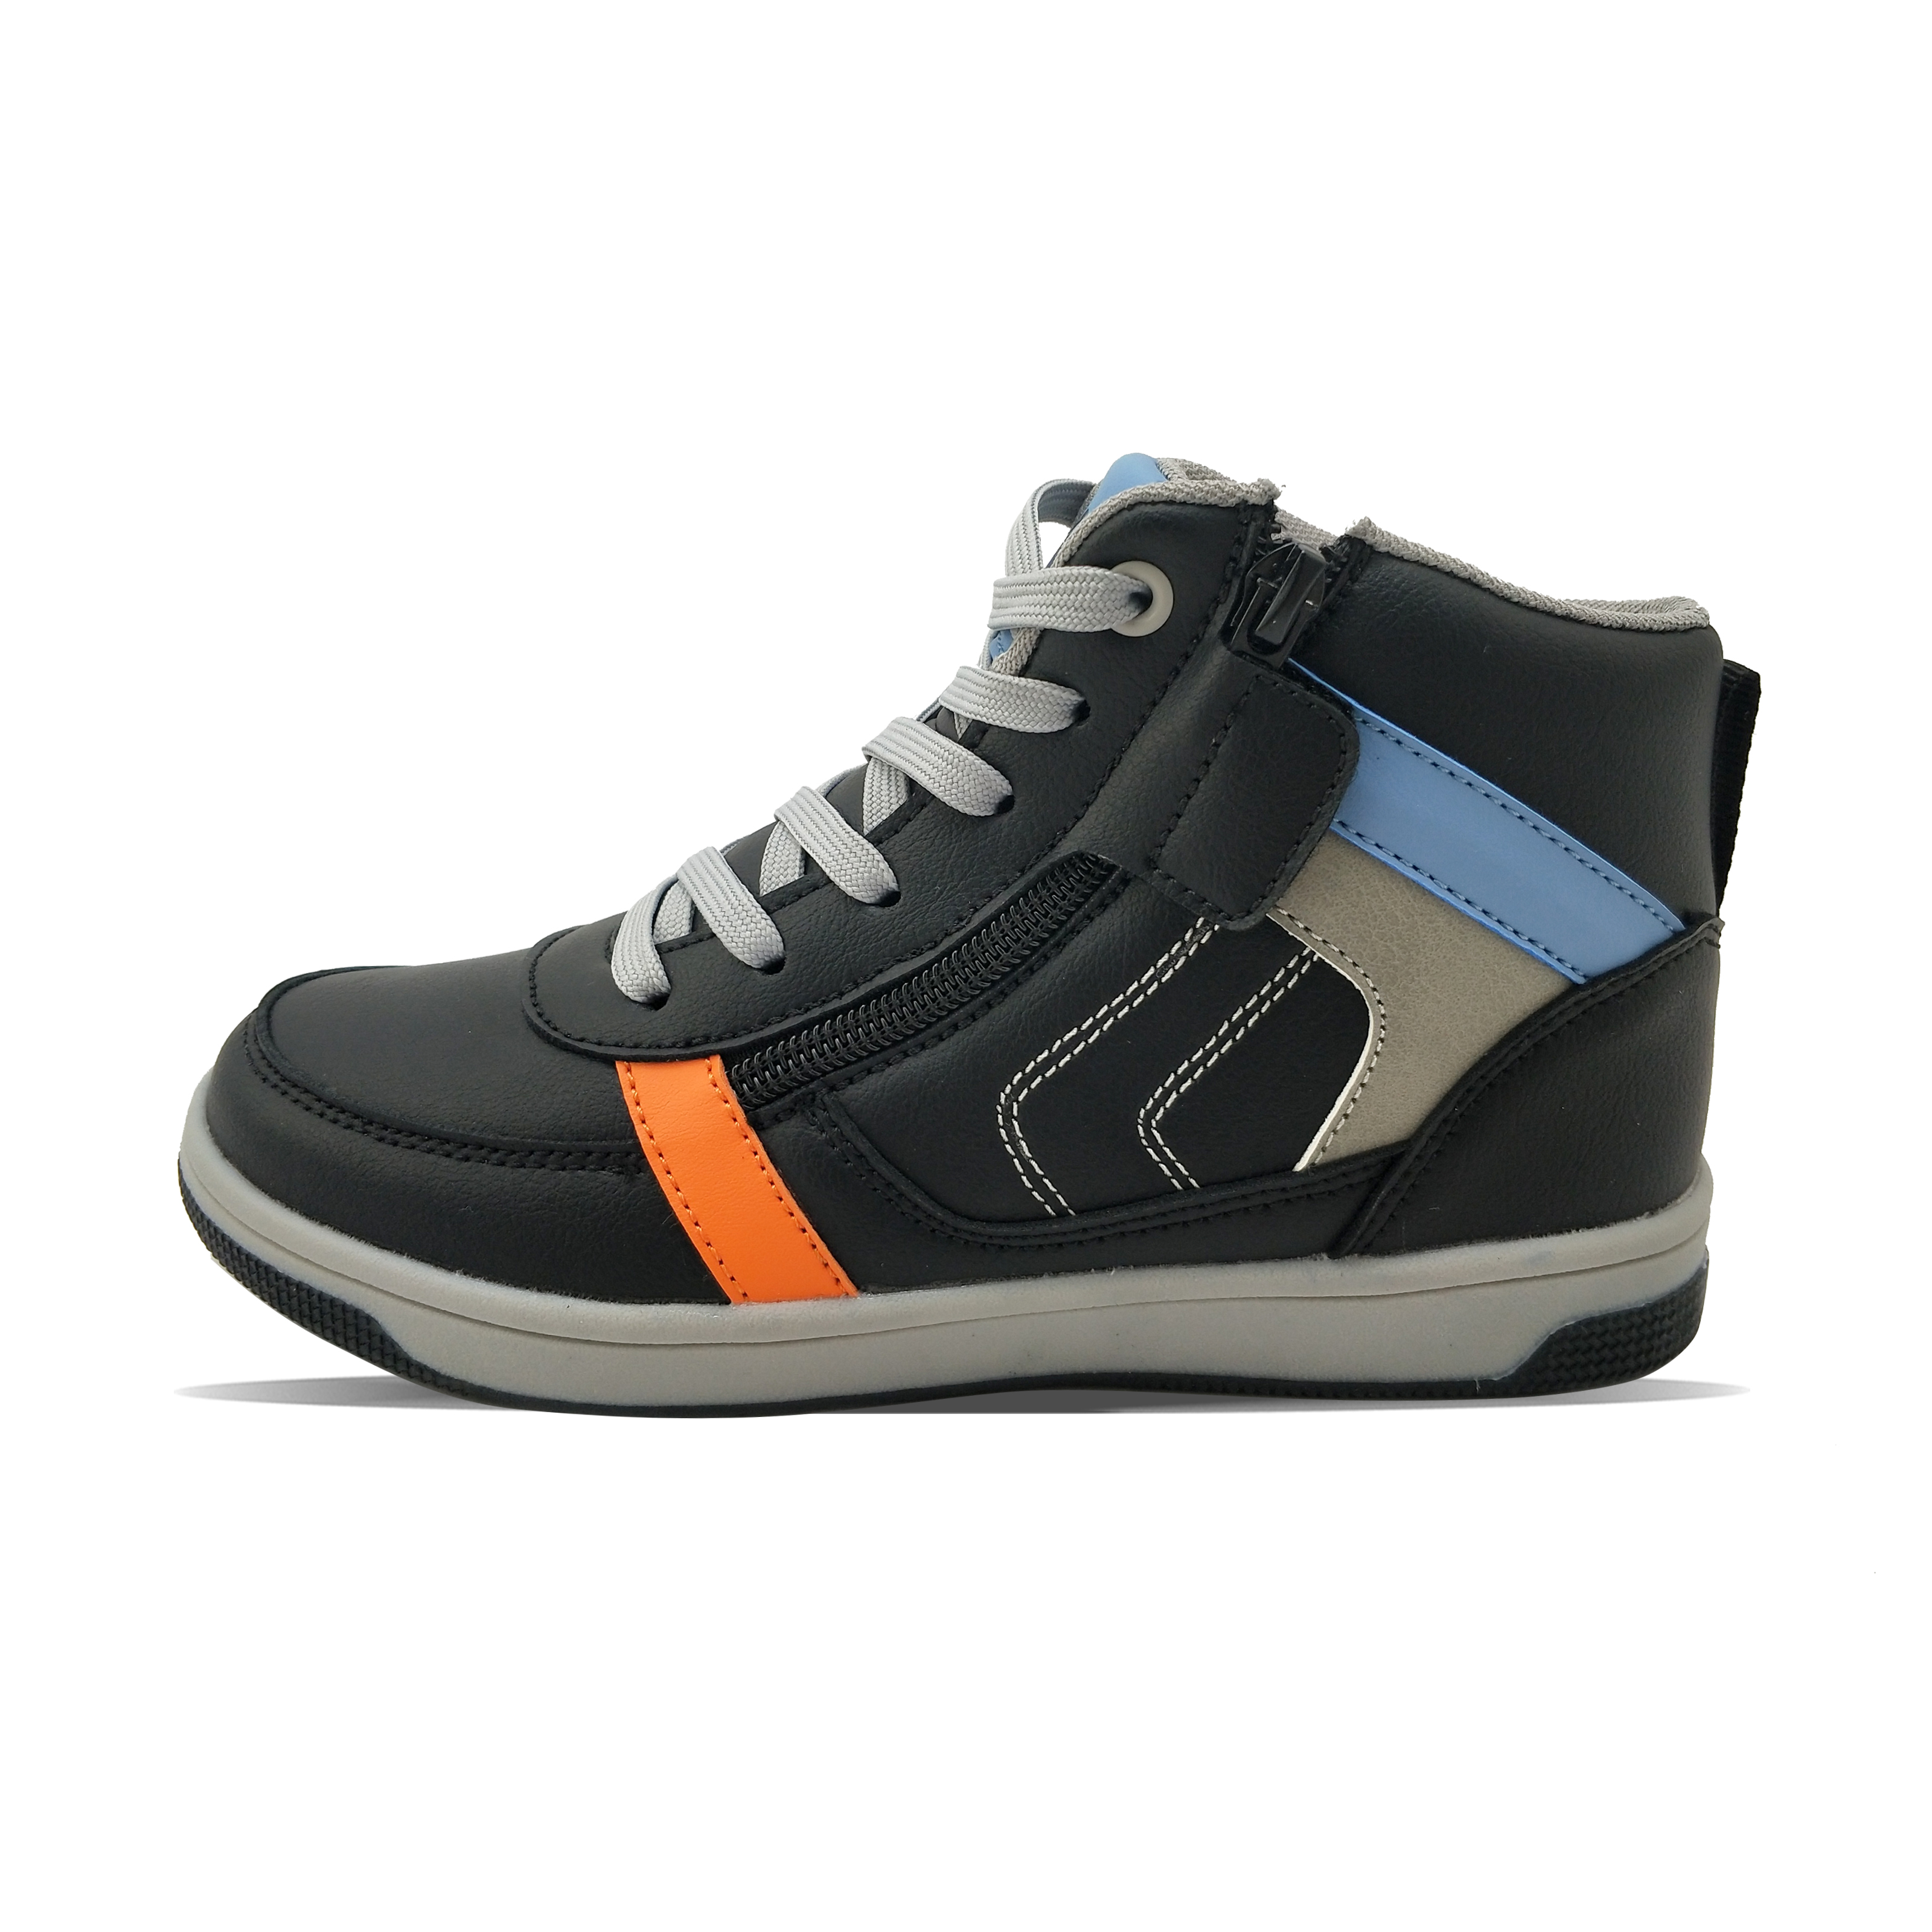 side zipper wool lining fashion warm cold-proof boy's casual shoes